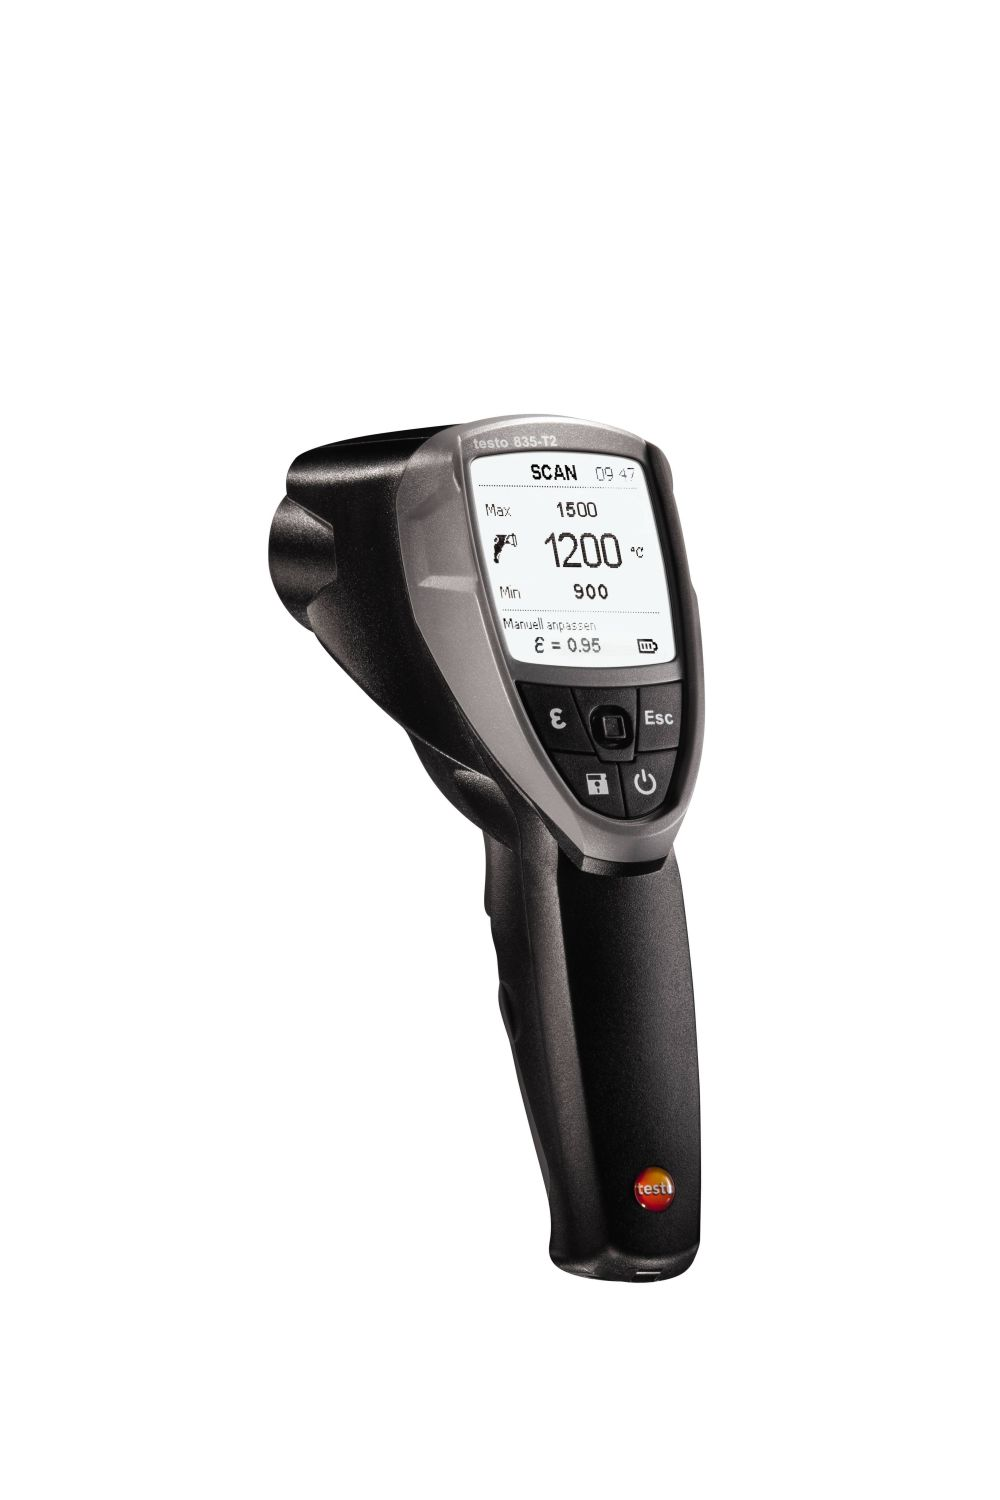 Testo 835-T2 - High temperature Infrared Thermometer